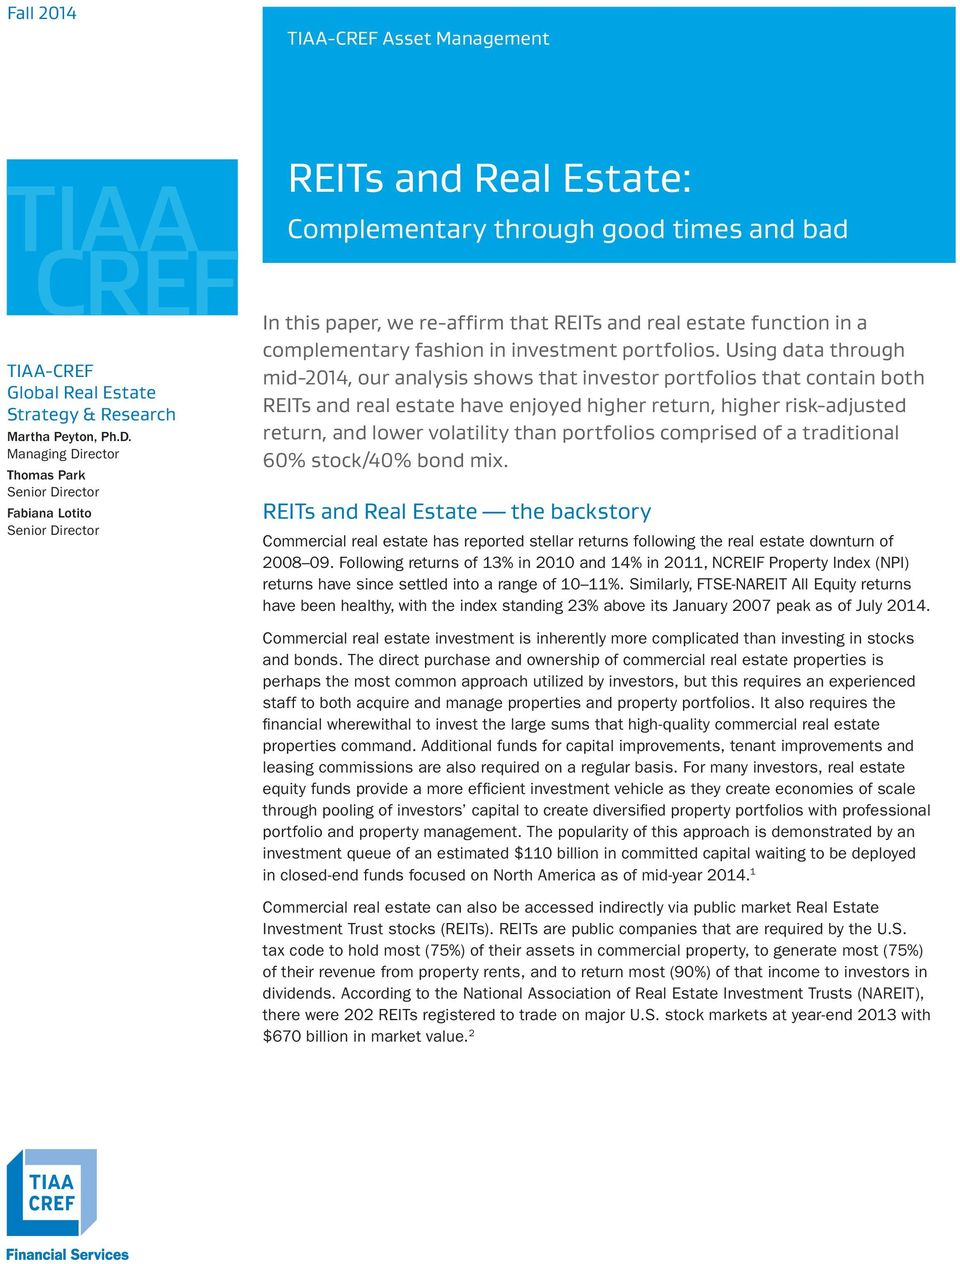 Using data through mid-2014, our analysis shows that investor portfolios that contain both REITs and real estate have enjoyed higher return, higher risk-adjusted return, and lower volatility than